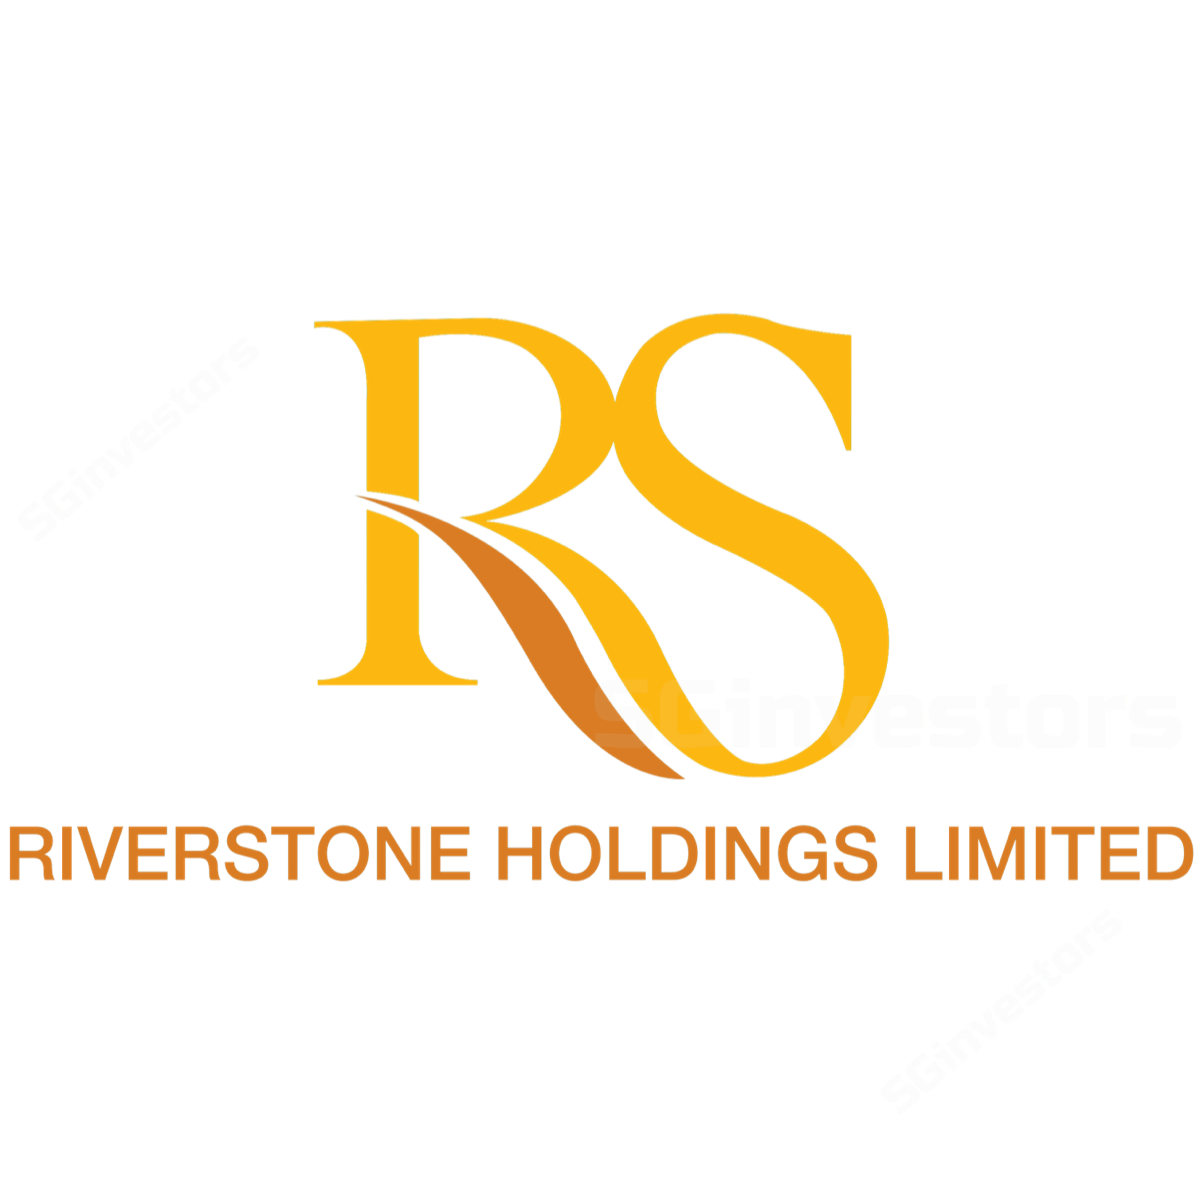 Riverstone Holdings (RSTON SP) - UOB Kay Hian 2016-12-12: Expansion Plans On Track But Recovery Gradual